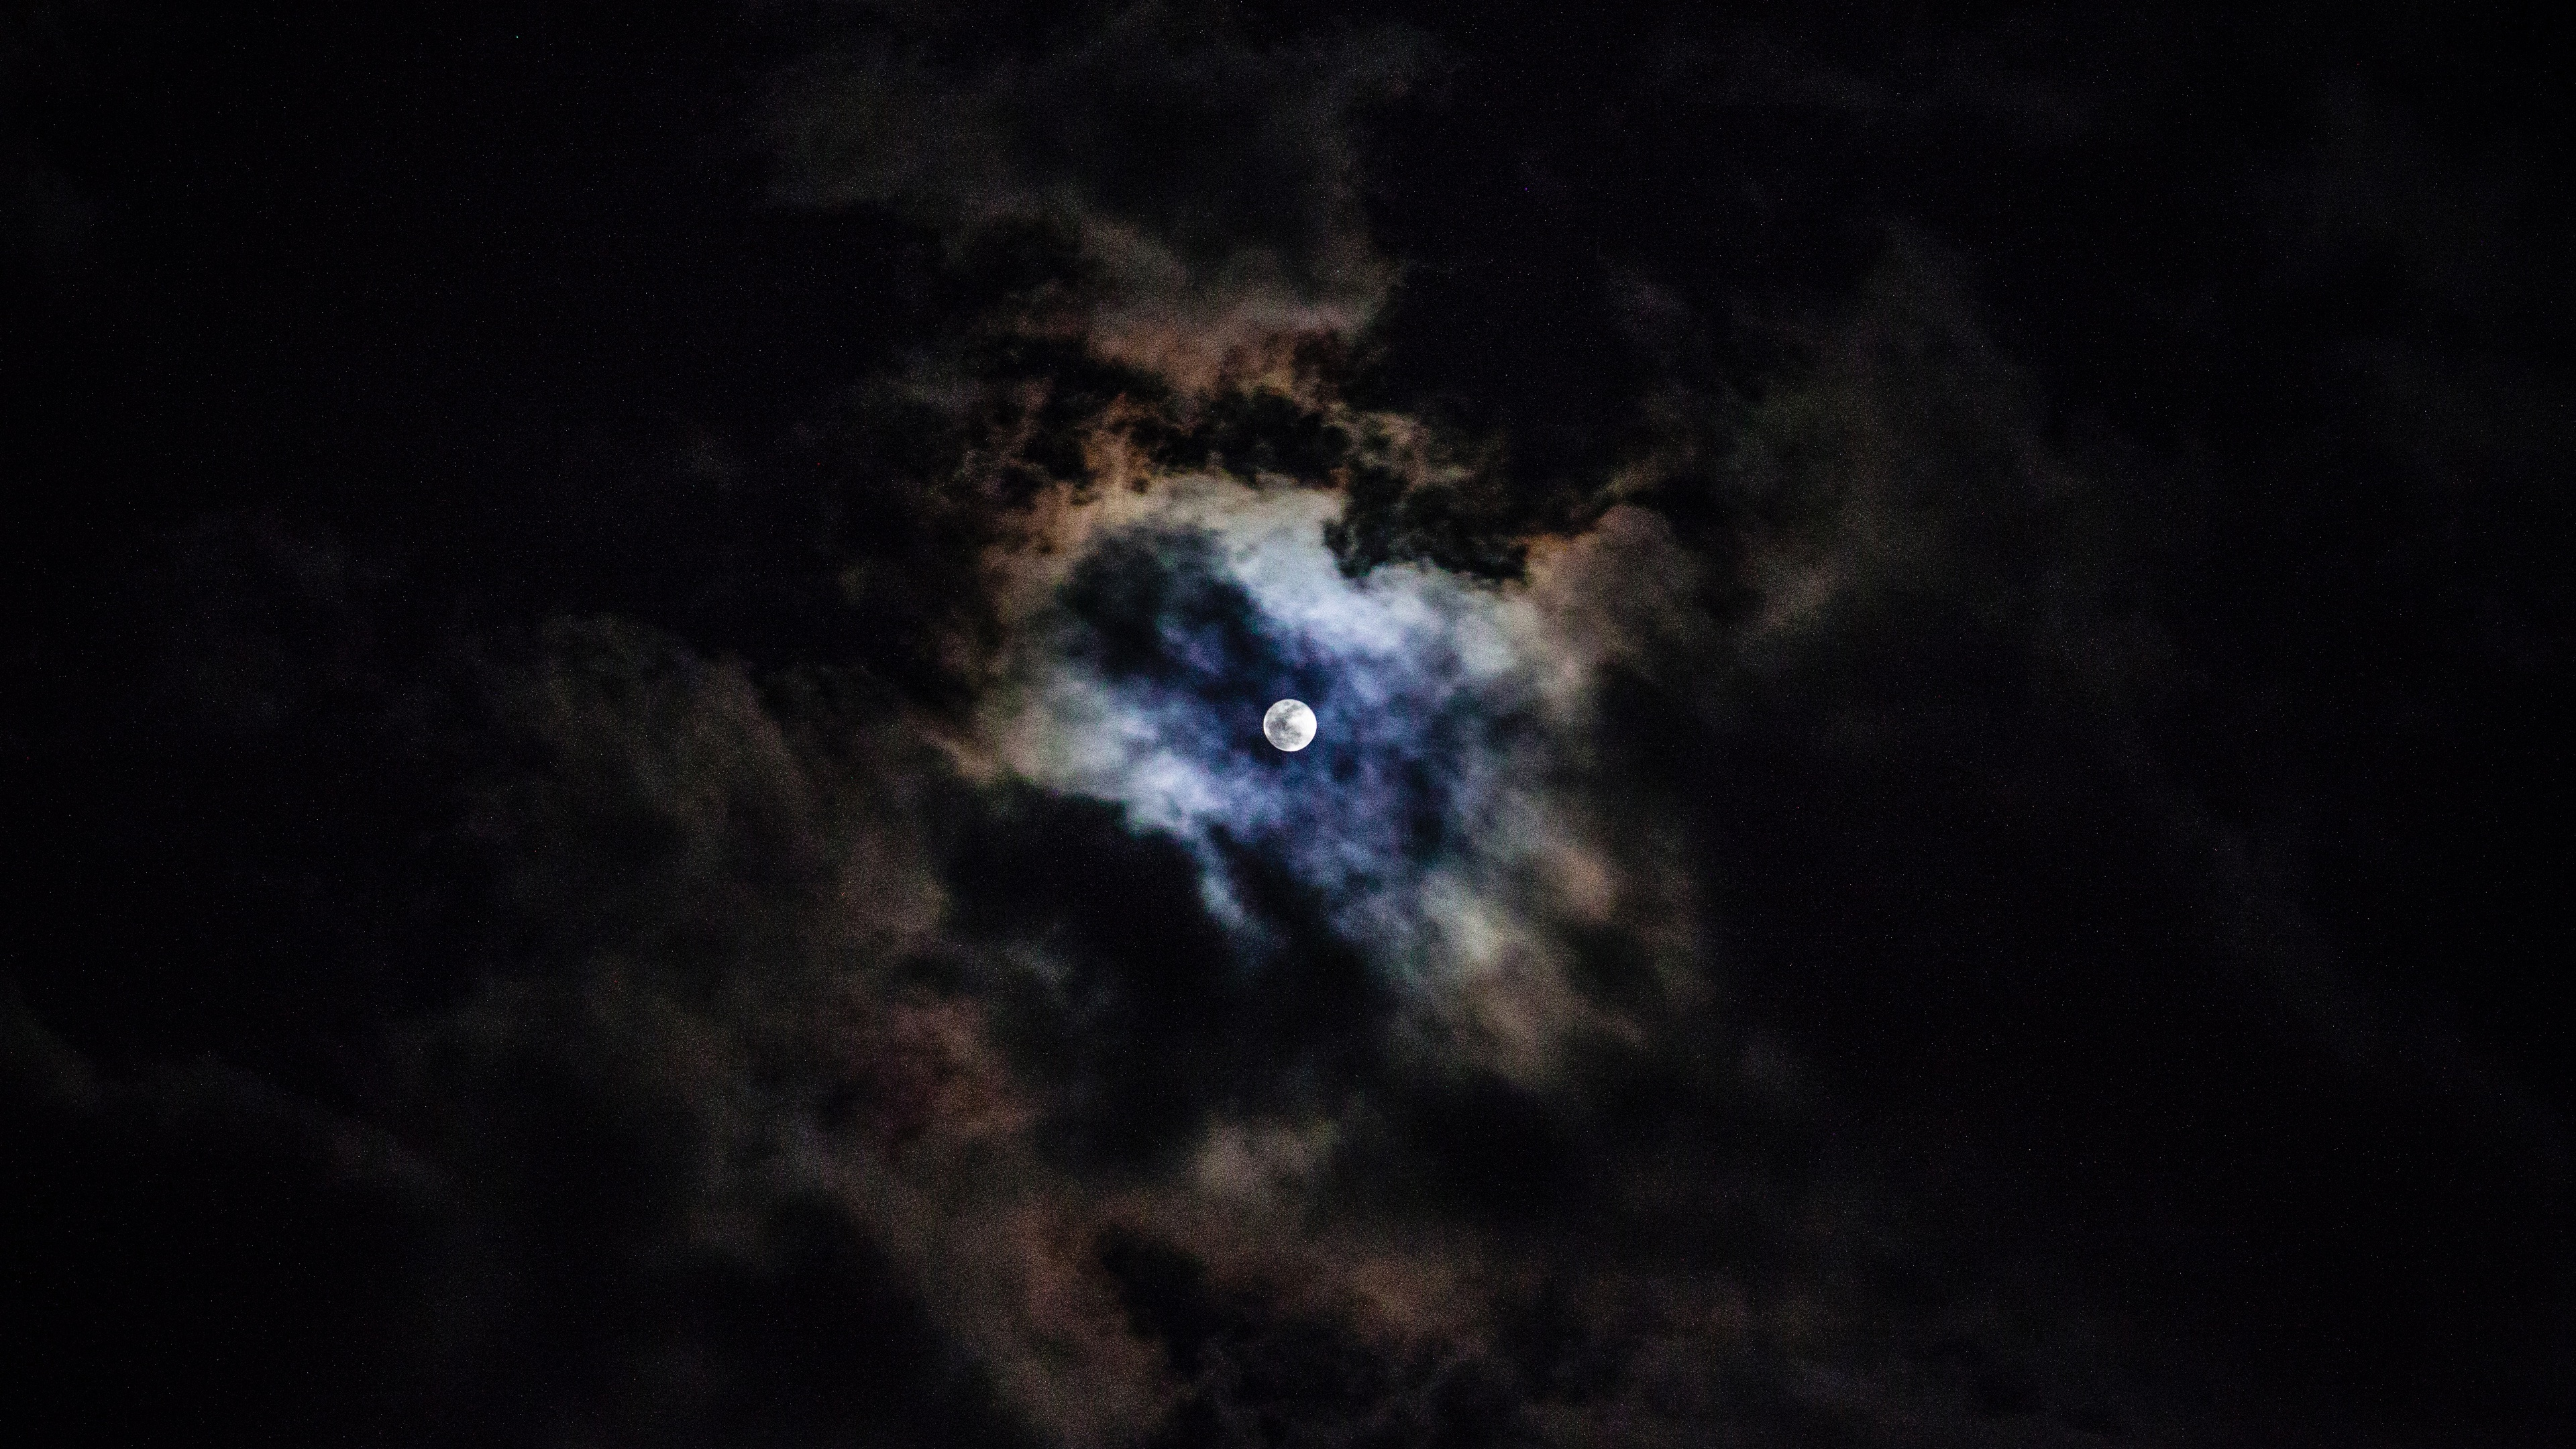 Wallpaper Moon Clouds Sky Night 3840x2160 Uhd 4k Picture Image